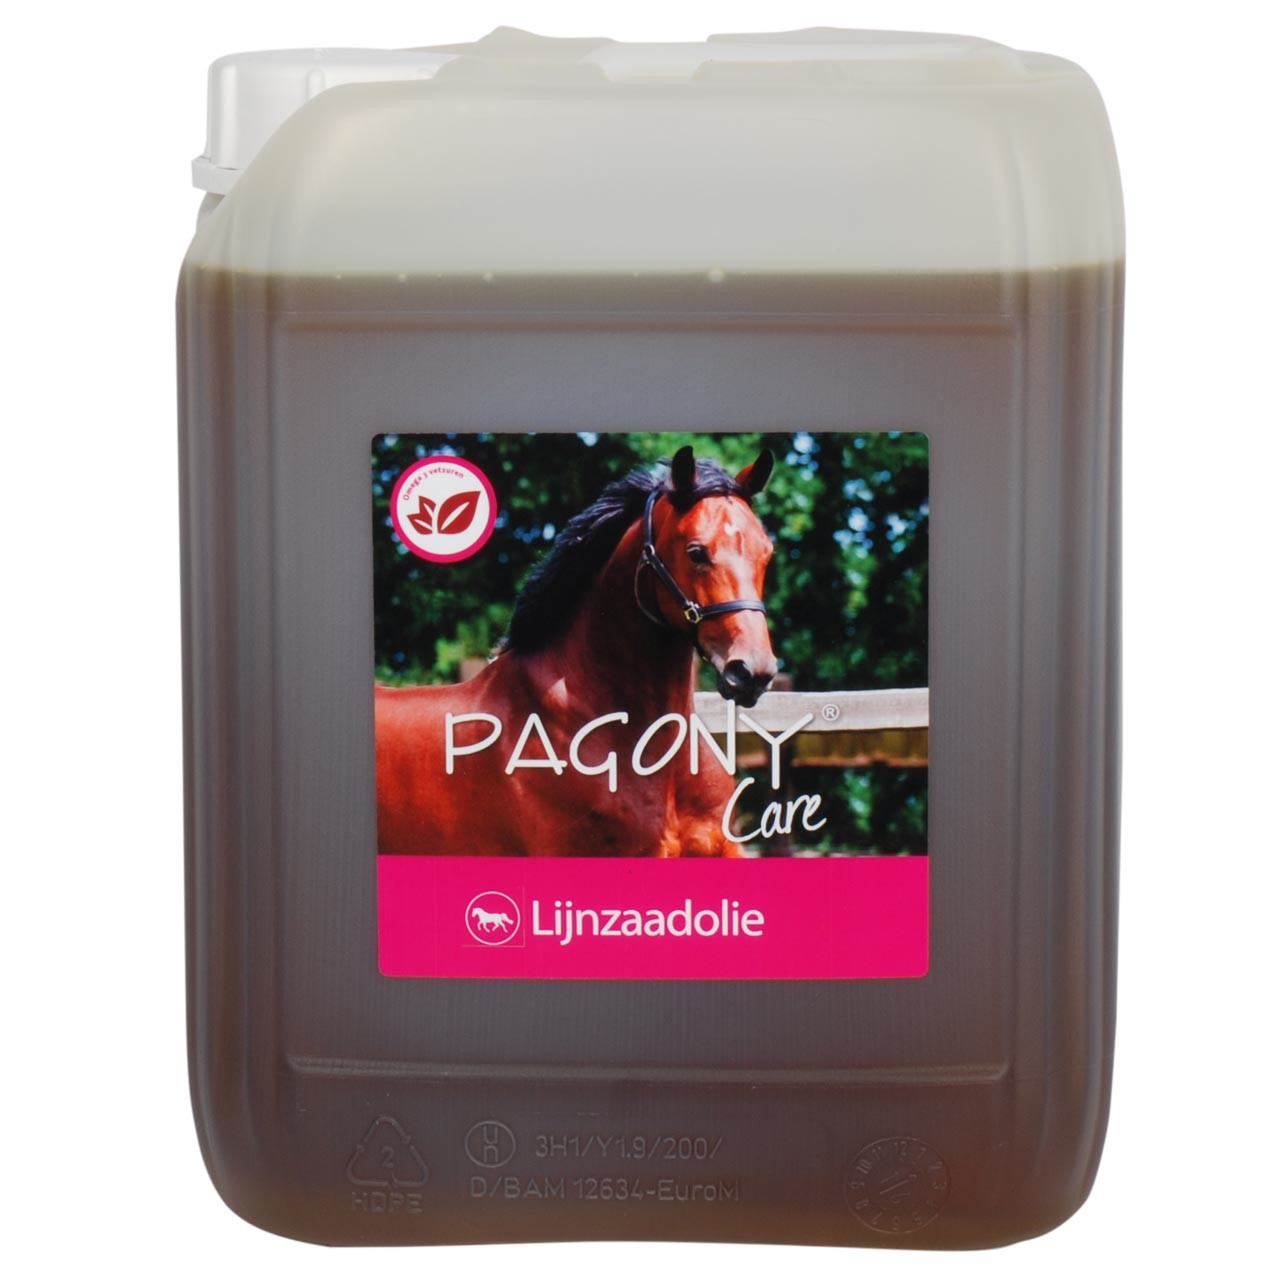 Pagony Care Lijnzaadolie 5 ltr